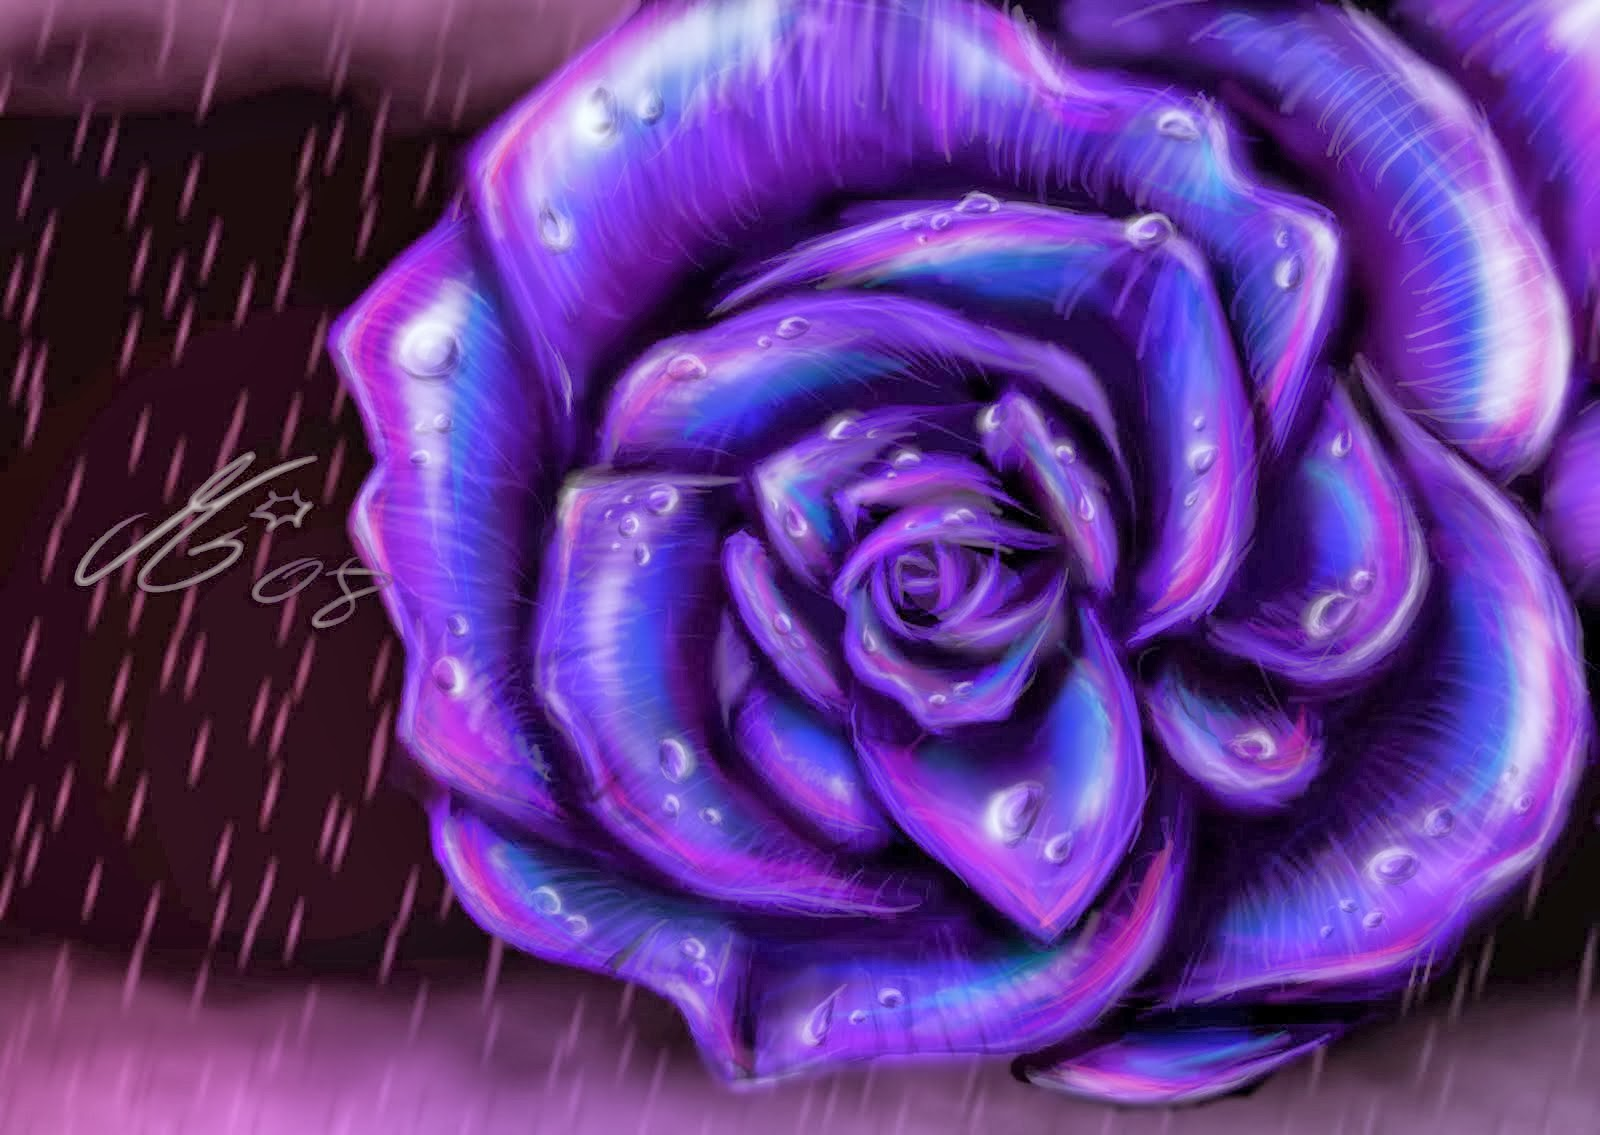 wallpapers of purple roses - photo #11